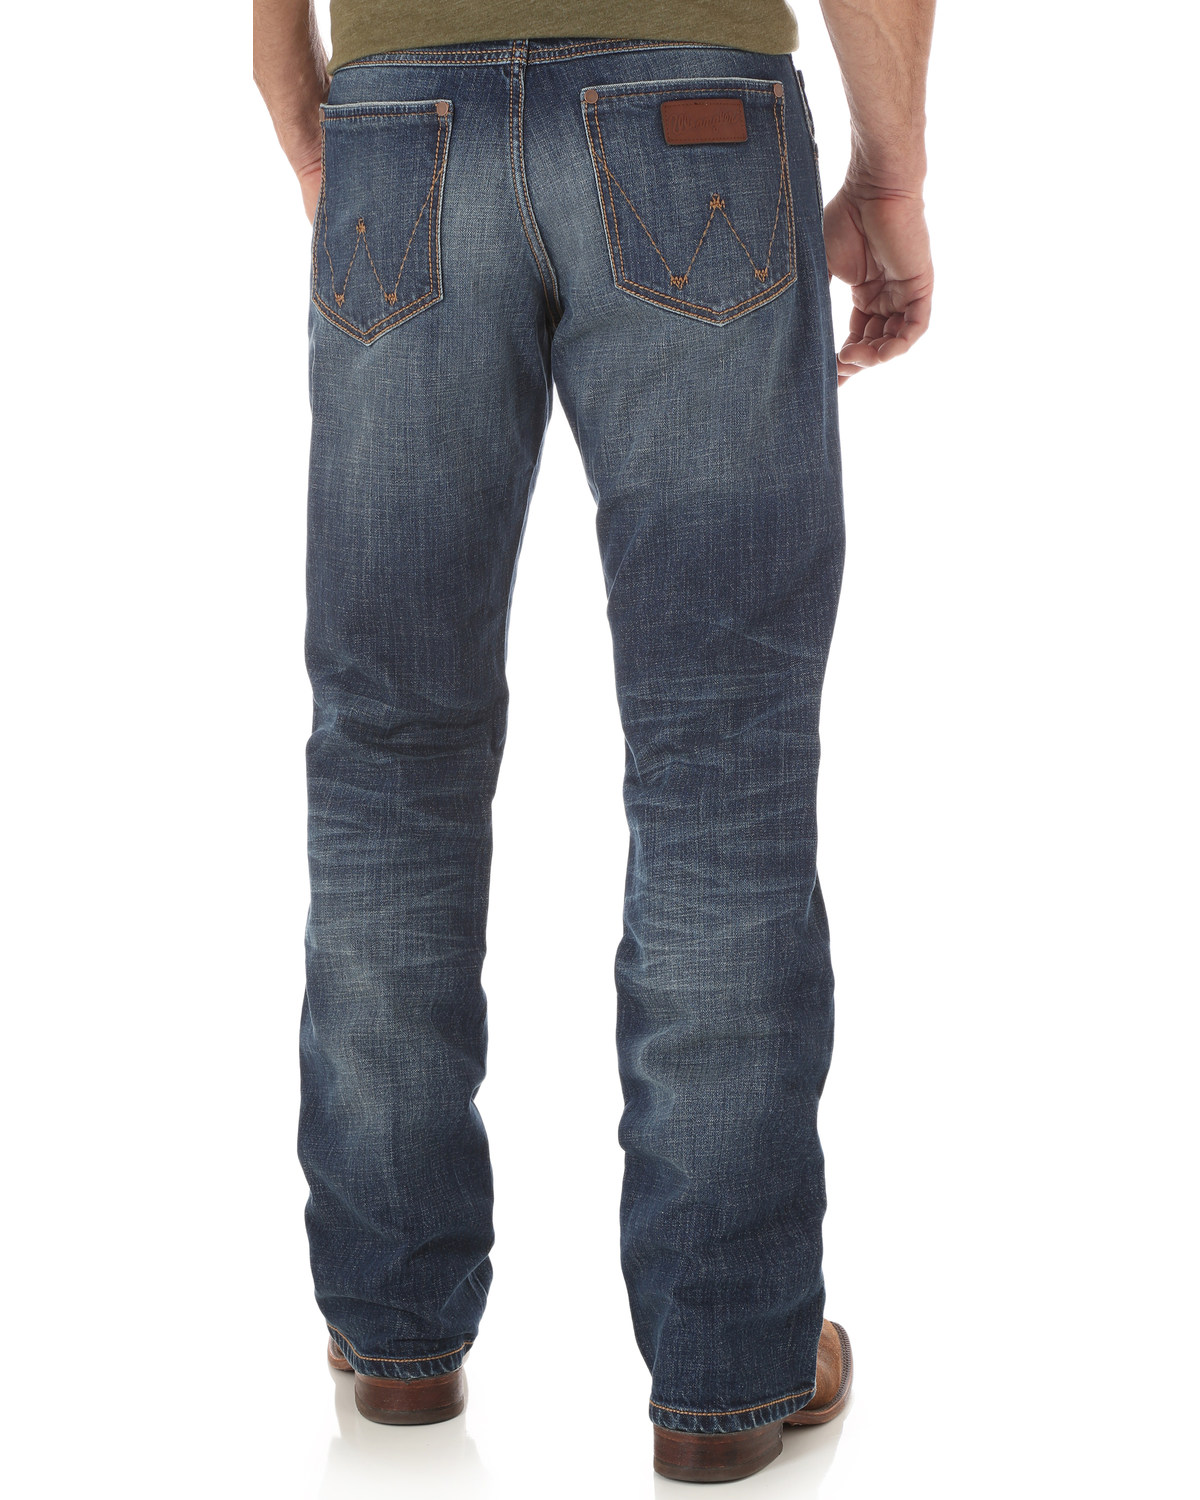 f97846b59e6 Zoomed Image Wrangler Men's Retro Relaxed Fit Mid Rise Boot Cut Jeans,  Indigo, ...